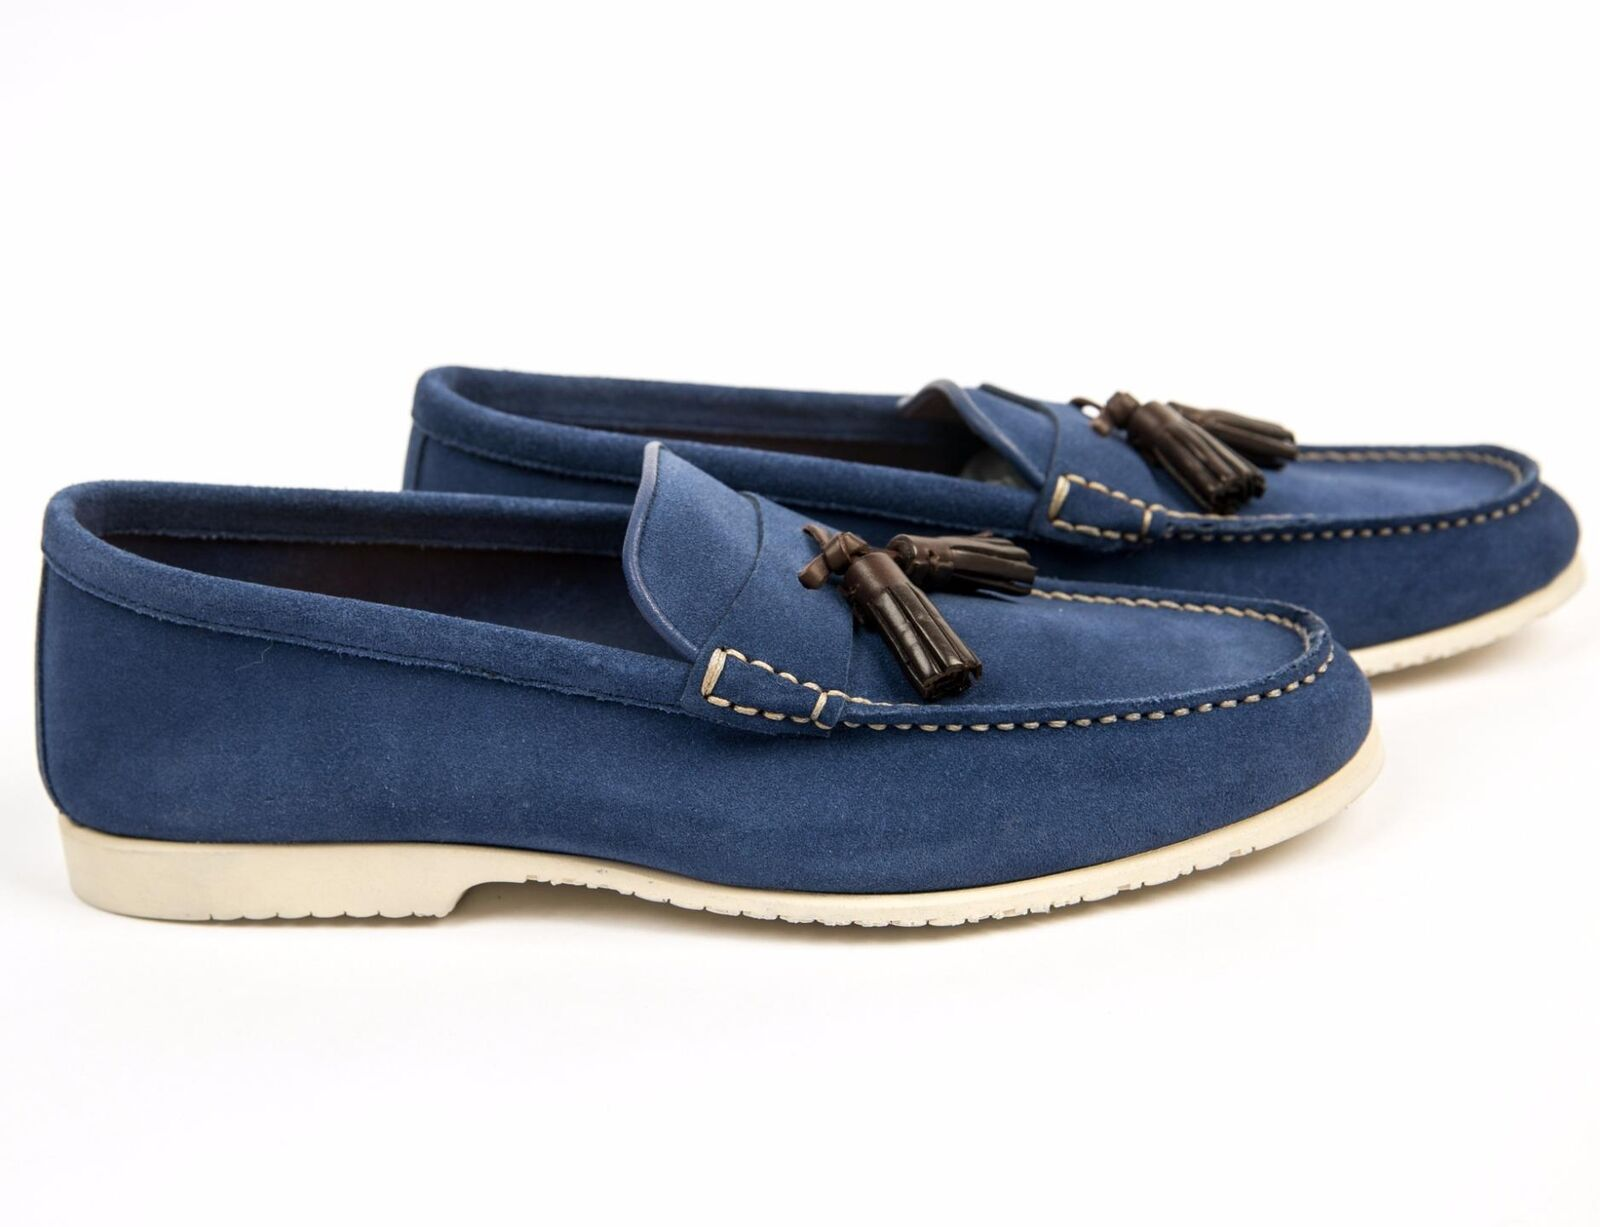 Tom Ford New 790 Suede Leather Blue Tassel Loafers Slip On Shoes FW18 9T 10 US